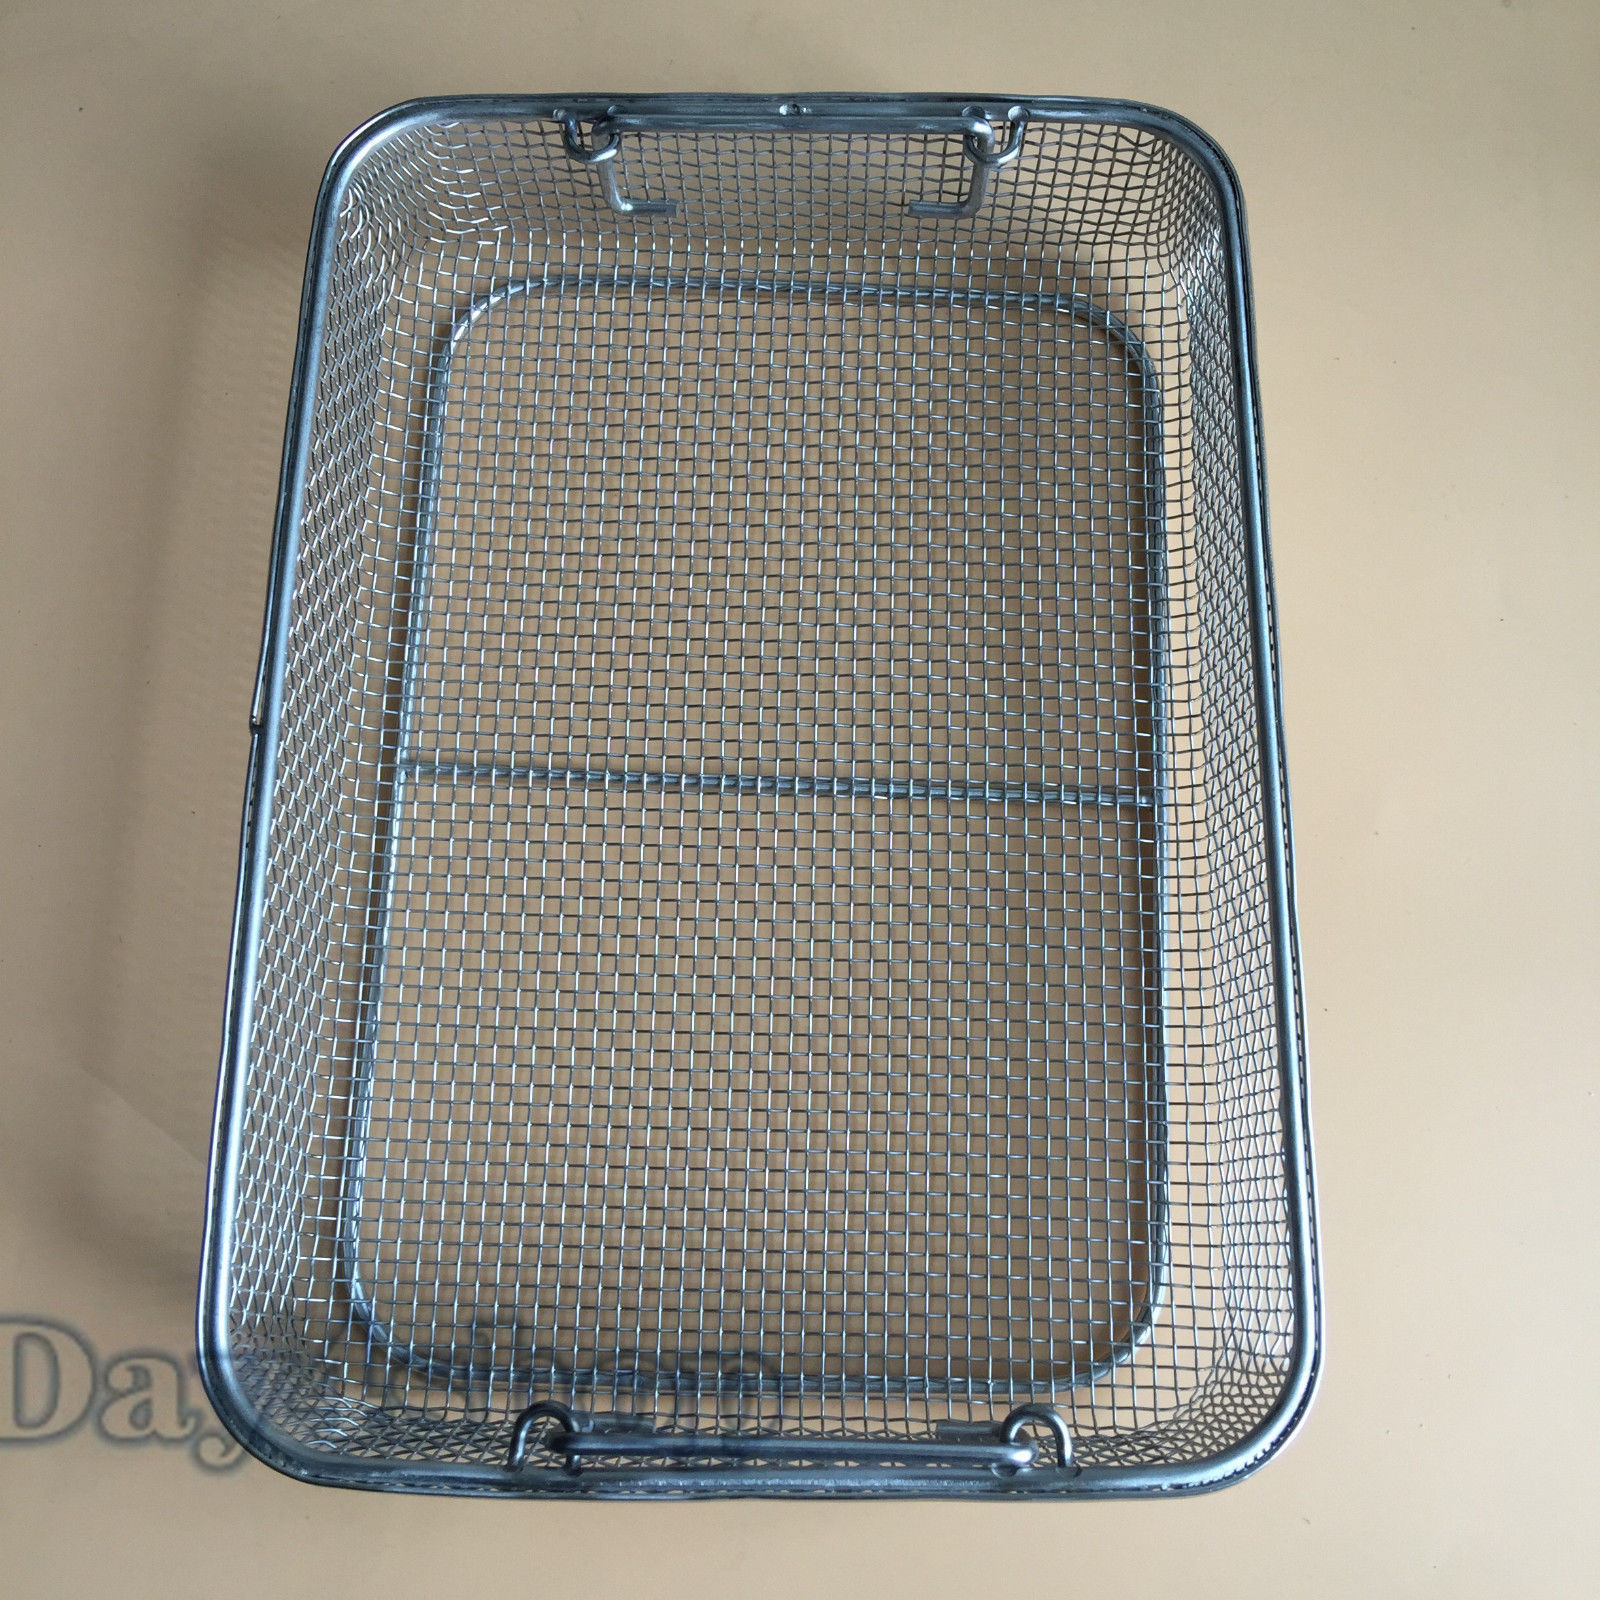 где купить Best small Stainless steel sterilization tray case box surgical instrument по лучшей цене